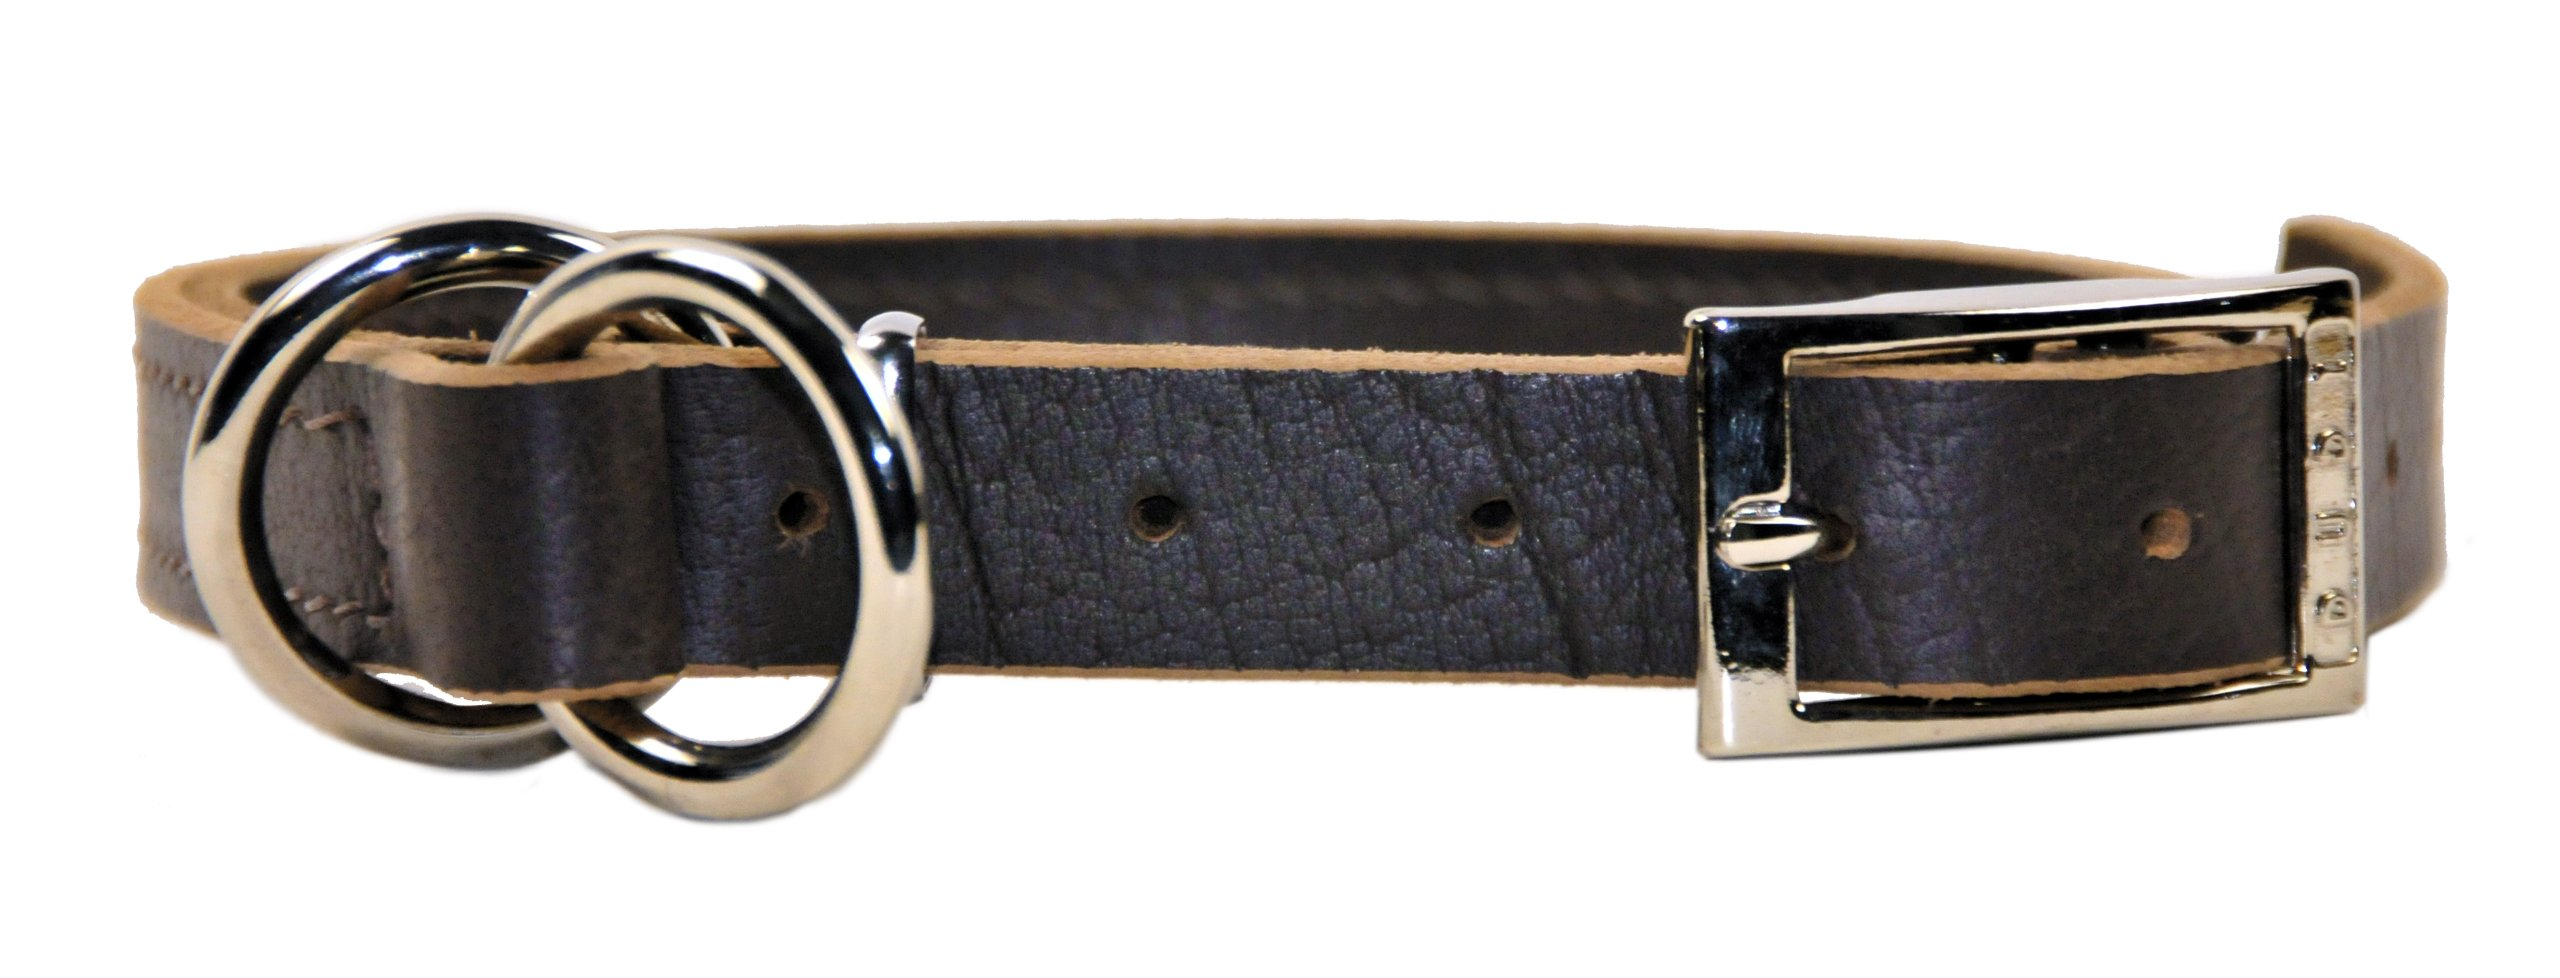 Dean and Tyler ''STRICTLY BUSINESS'', 2-in-1 Dog Choke Collar with Solid Nickel Hardware - Black - Size 22-Inch by 1-Inch - Fits Neck 20-Inch to 22-Inch